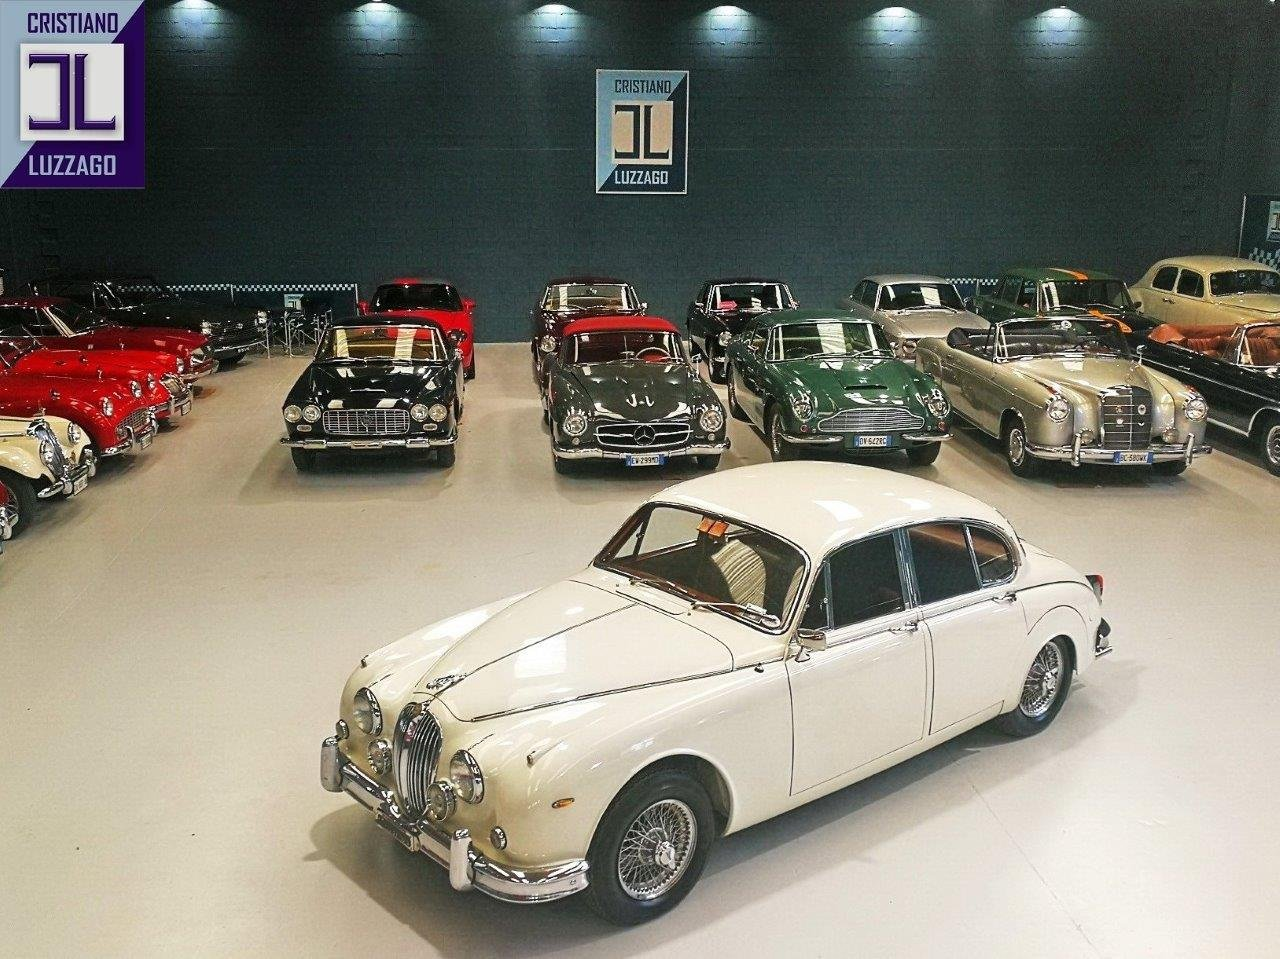 1967 JAGUAR MK2 3.800 SALOON WITH POWER STEERING AND AIR CON For Sale (picture 1 of 6)